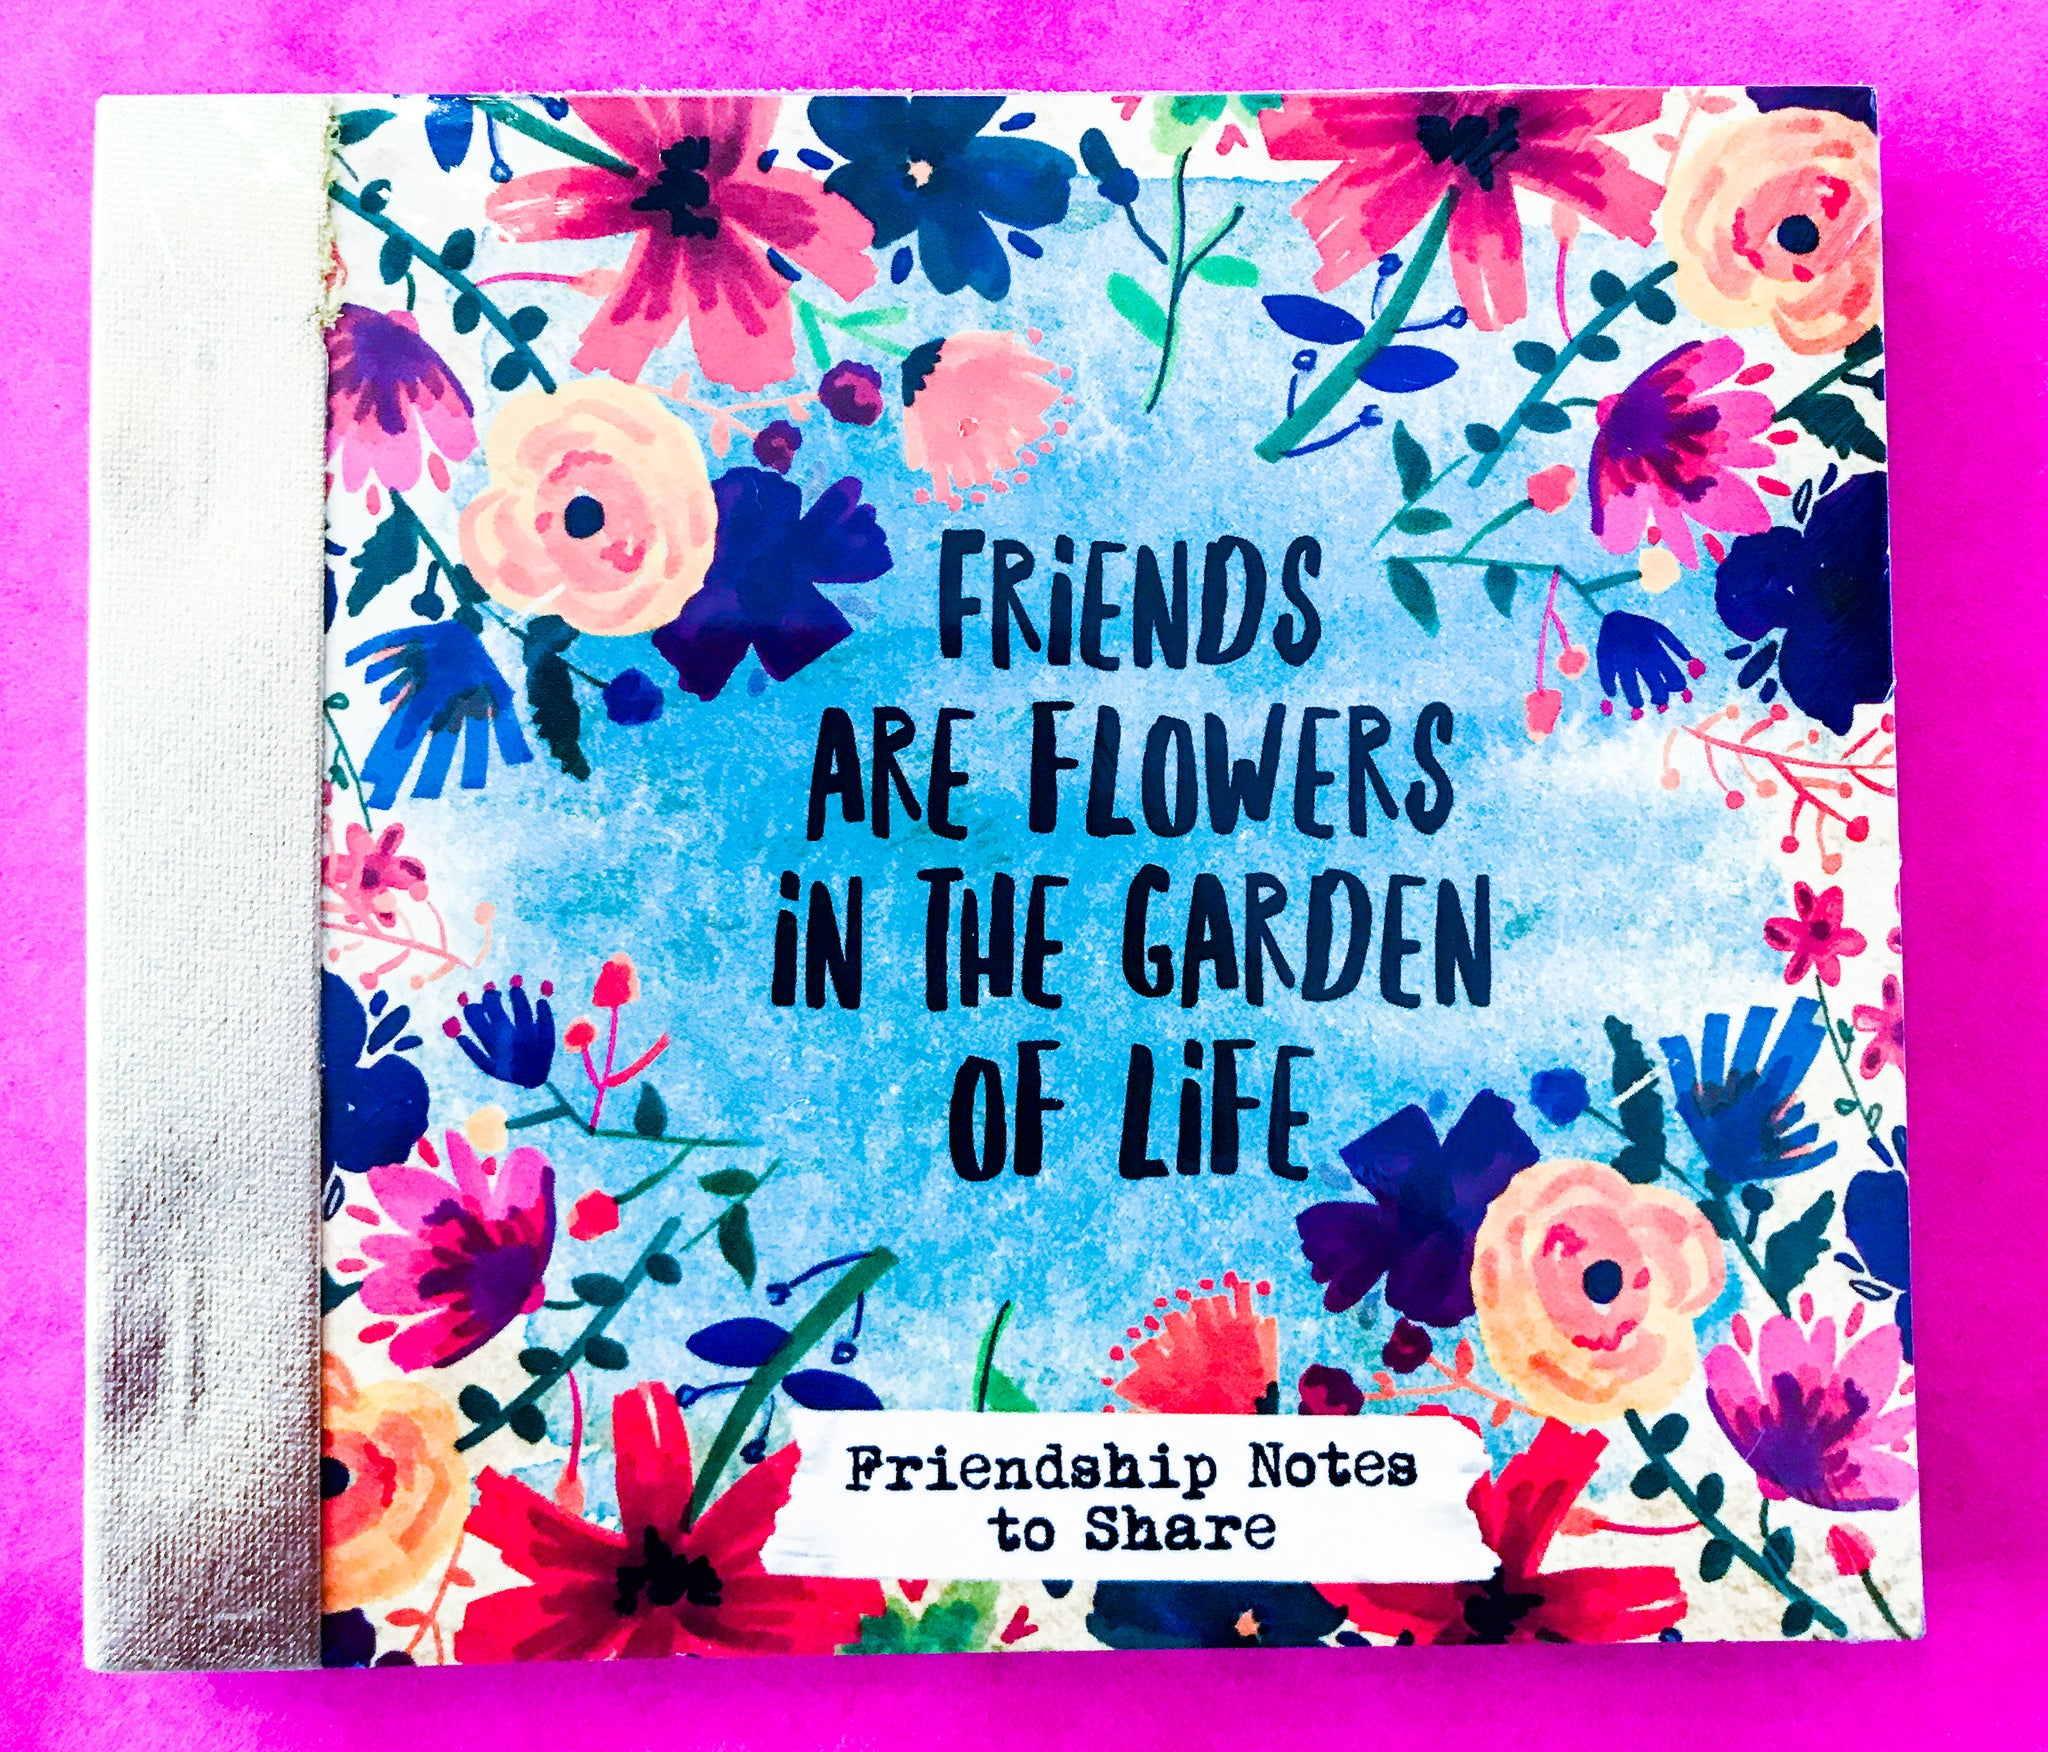 Friendship Notes To Share - Friends are Flowers in the Garden of Life